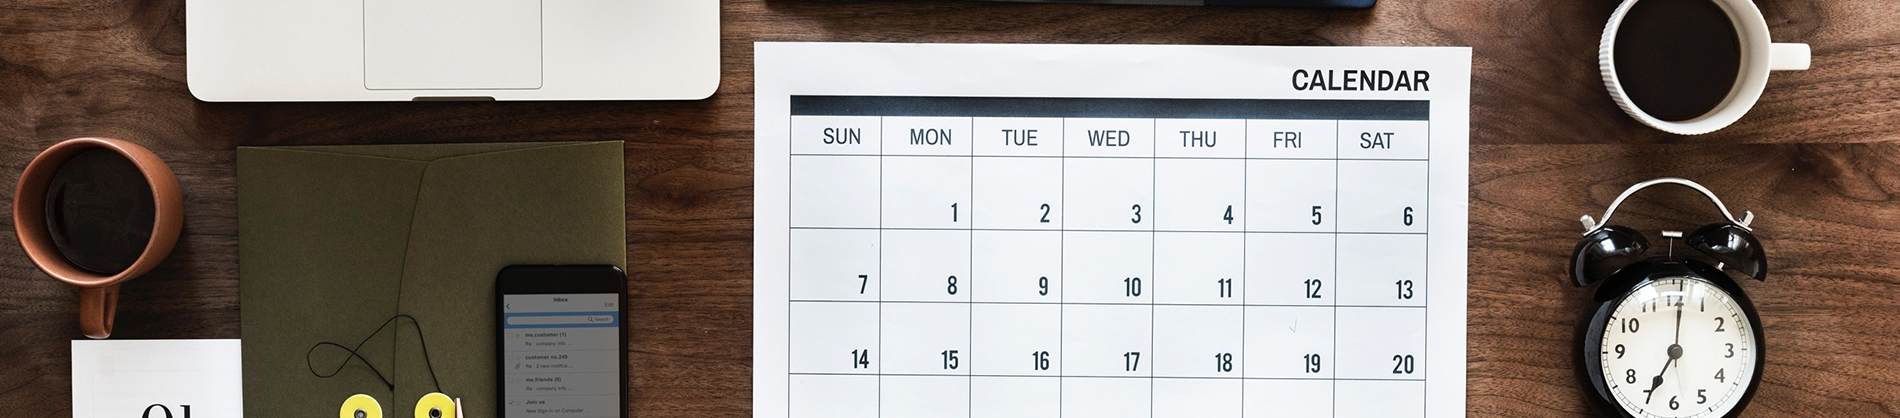 A wooden desk with a calendar, clock and phone on